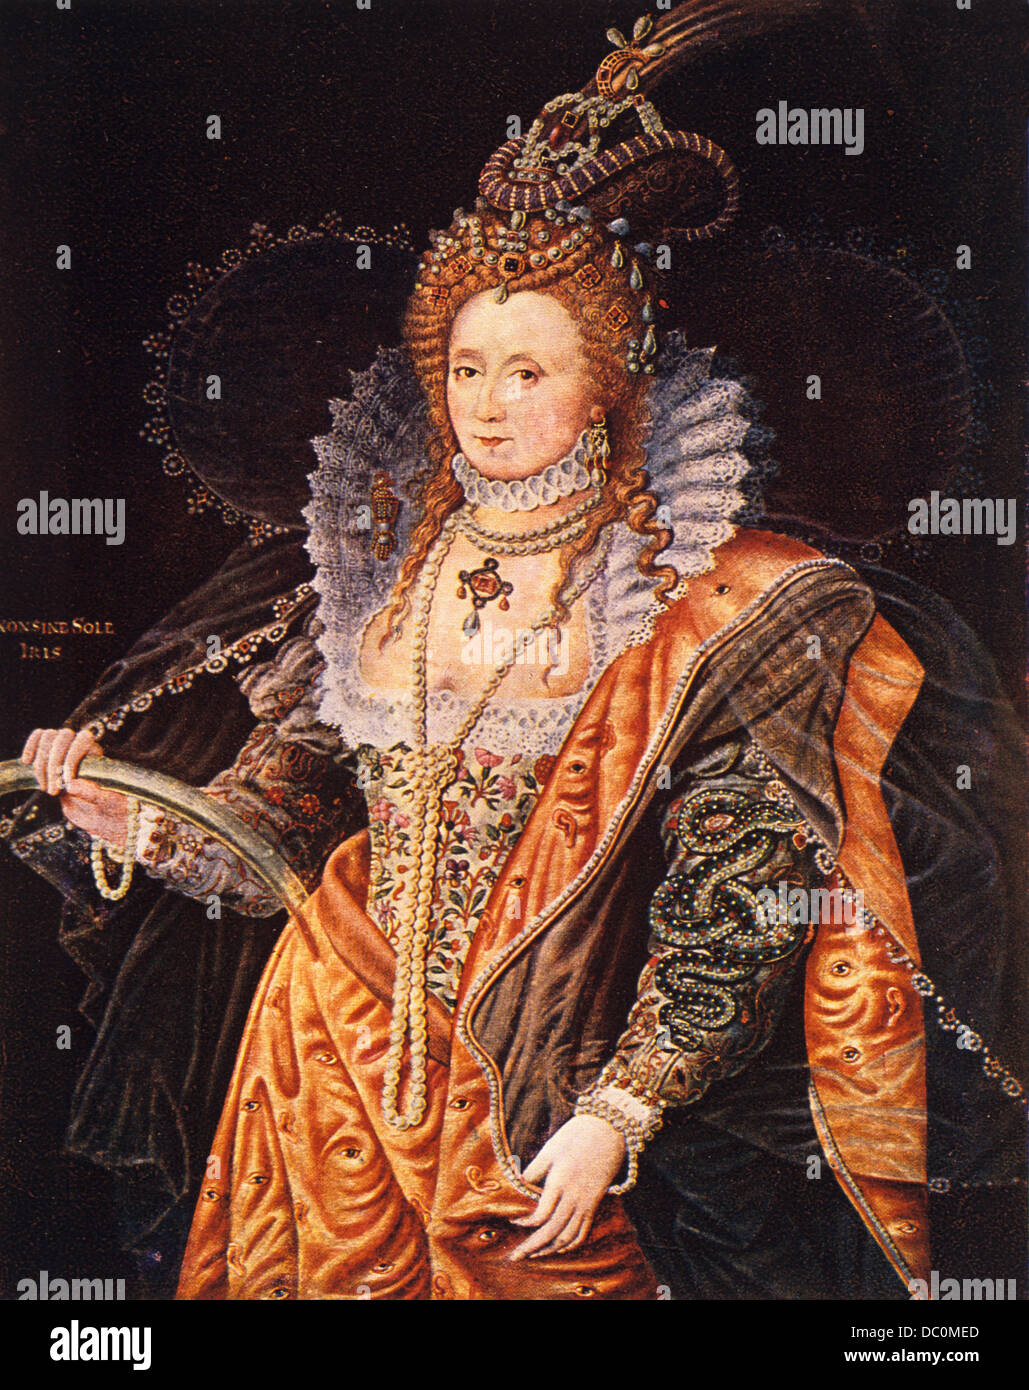 Tudor Style House Pictures 1500s 1600s Color Portrait Queen Elizabeth I From Painting